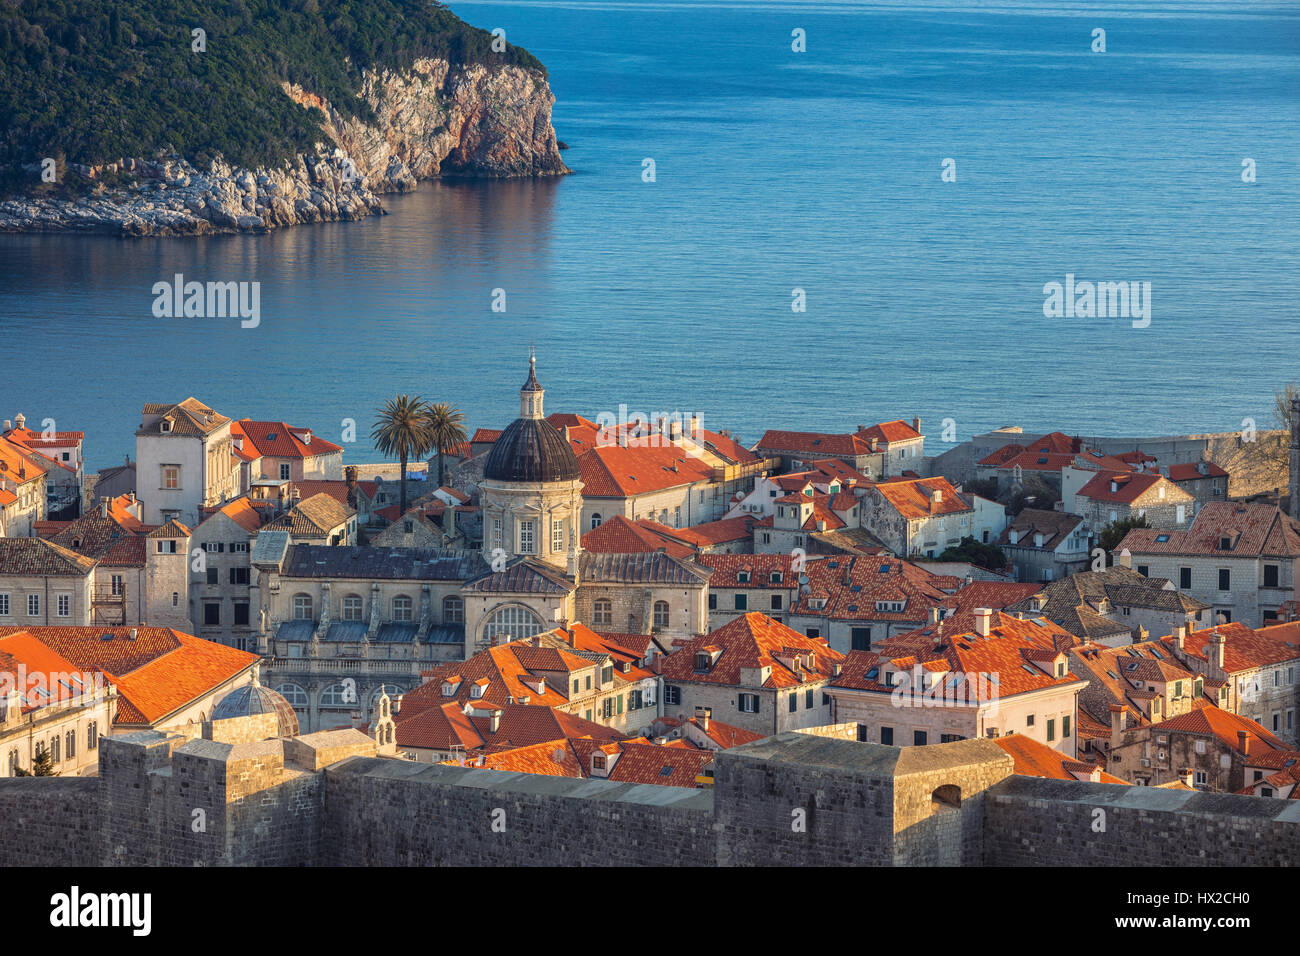 Dubrovnik, Croatia. Beautiful romantic old town of Dubrovnik during sunny day. - Stock Image